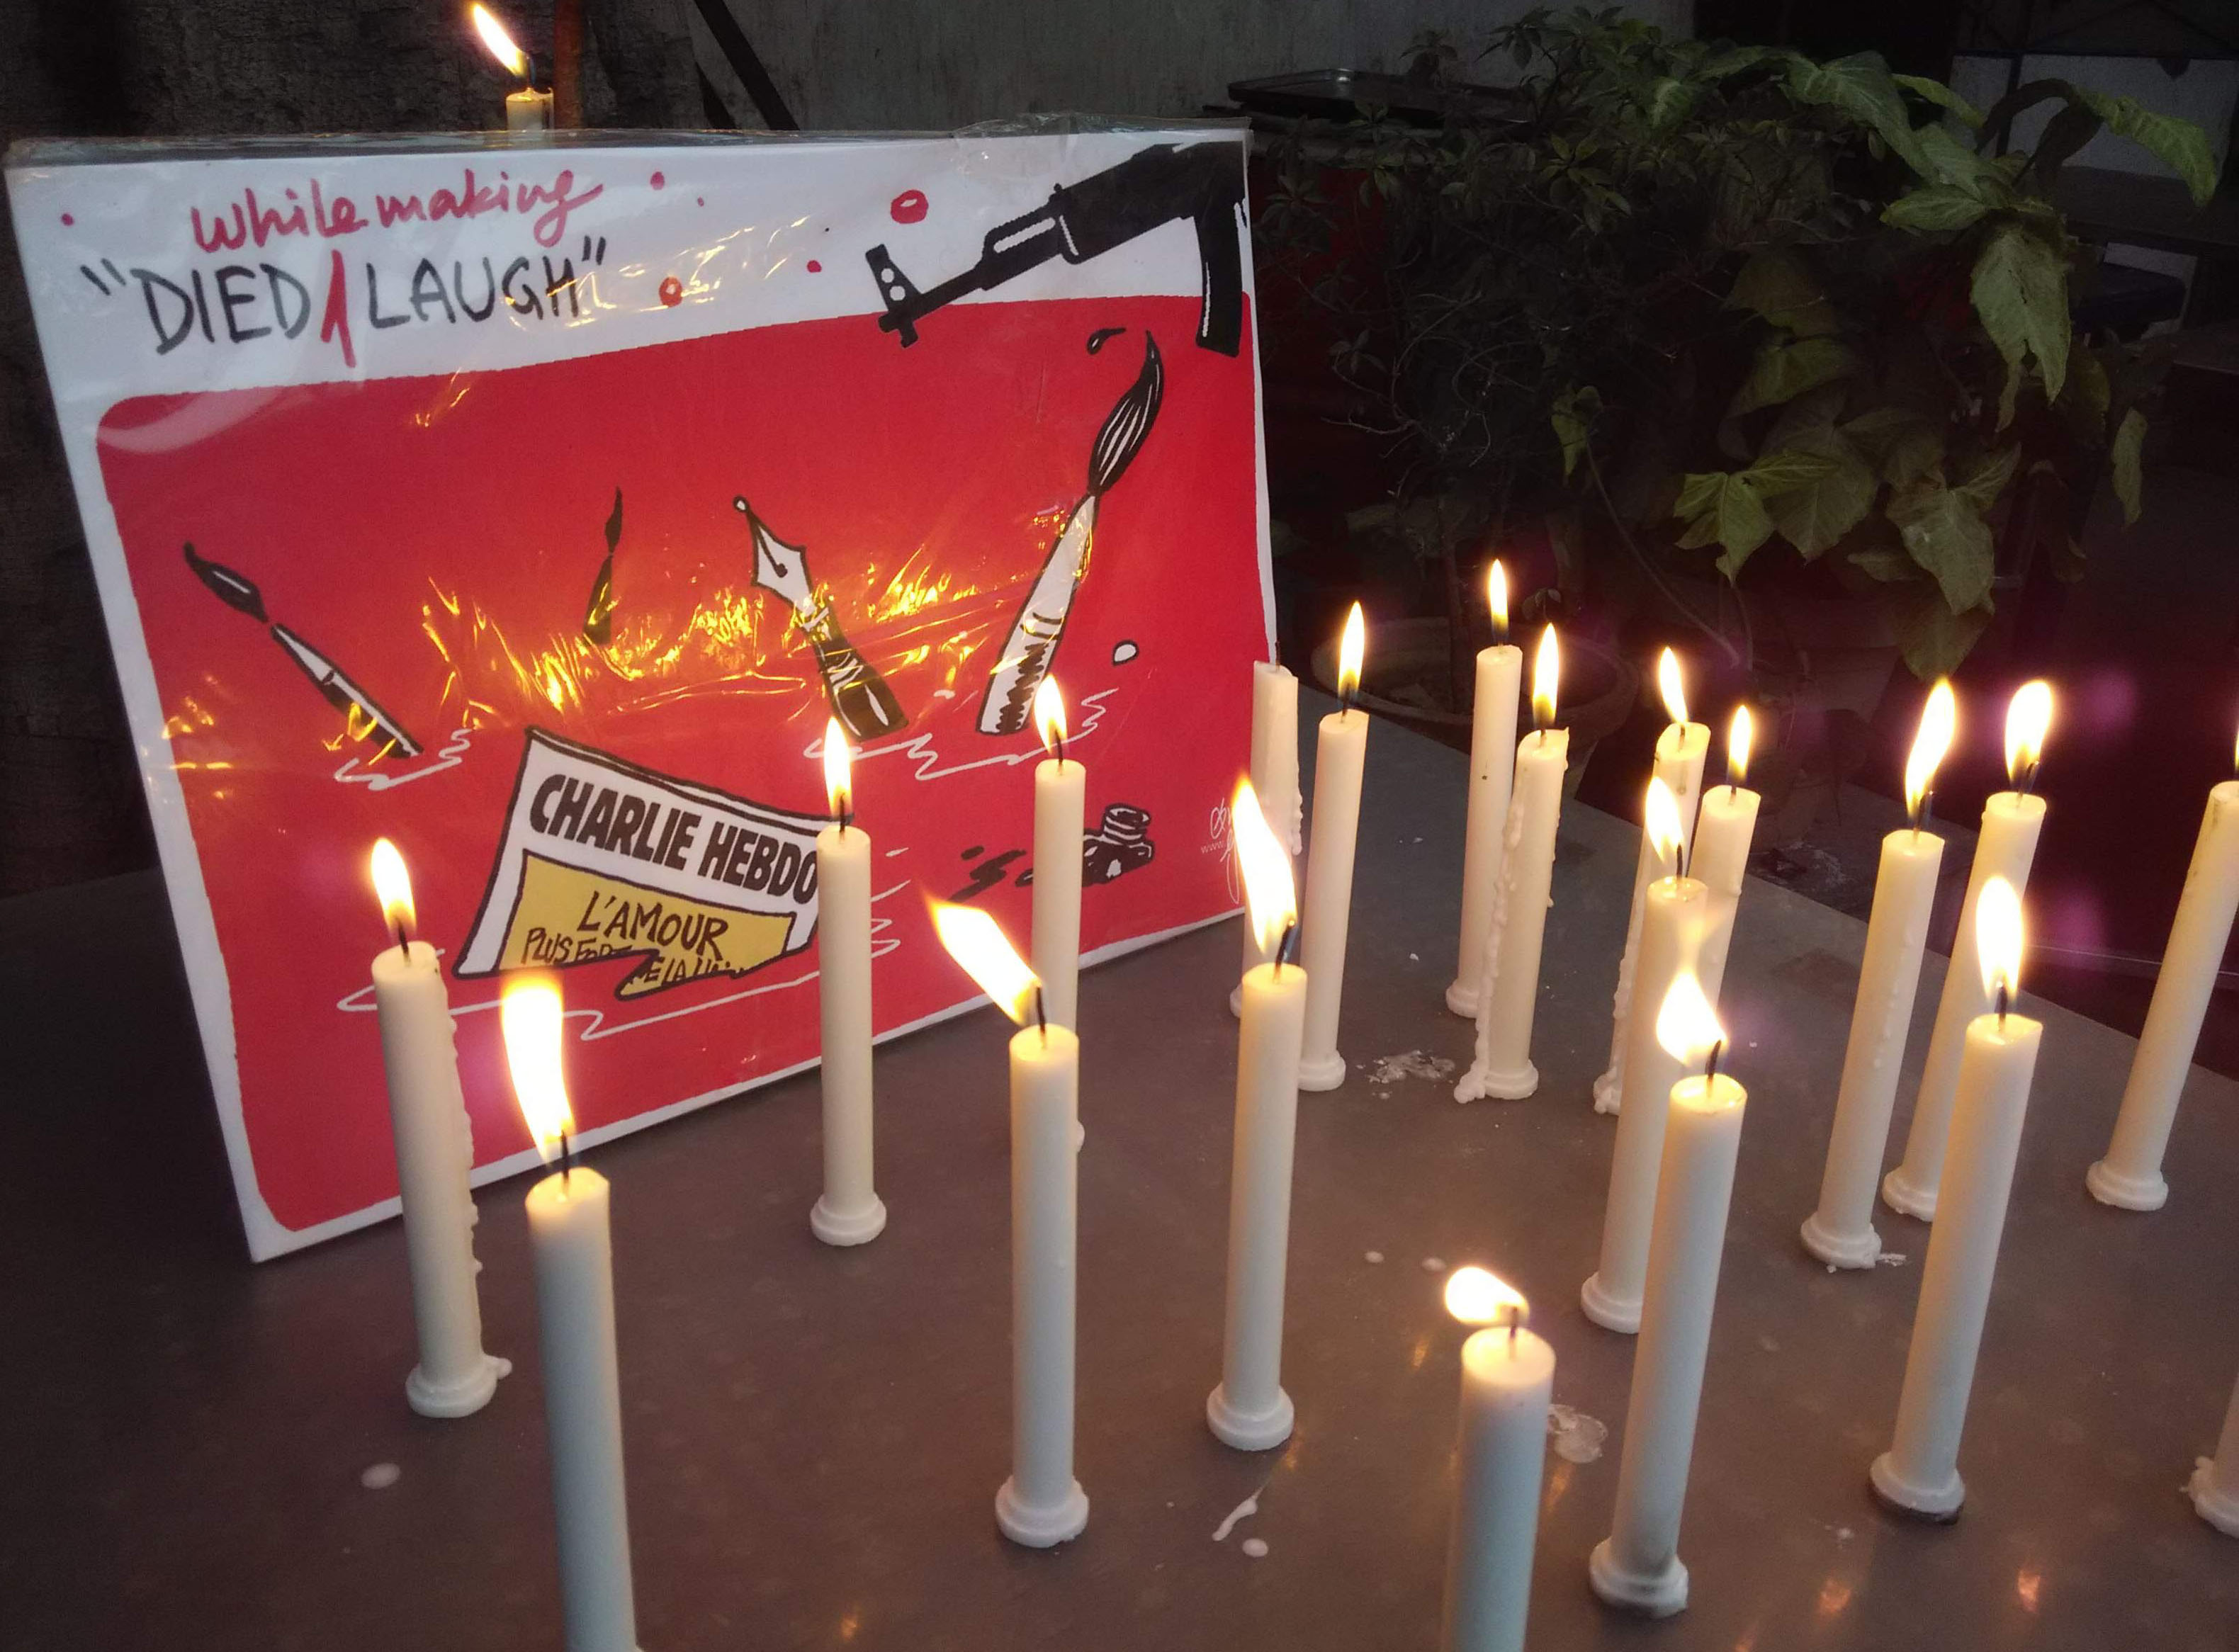 Candle Vigil for Victims of Charlie Hebdo Attack